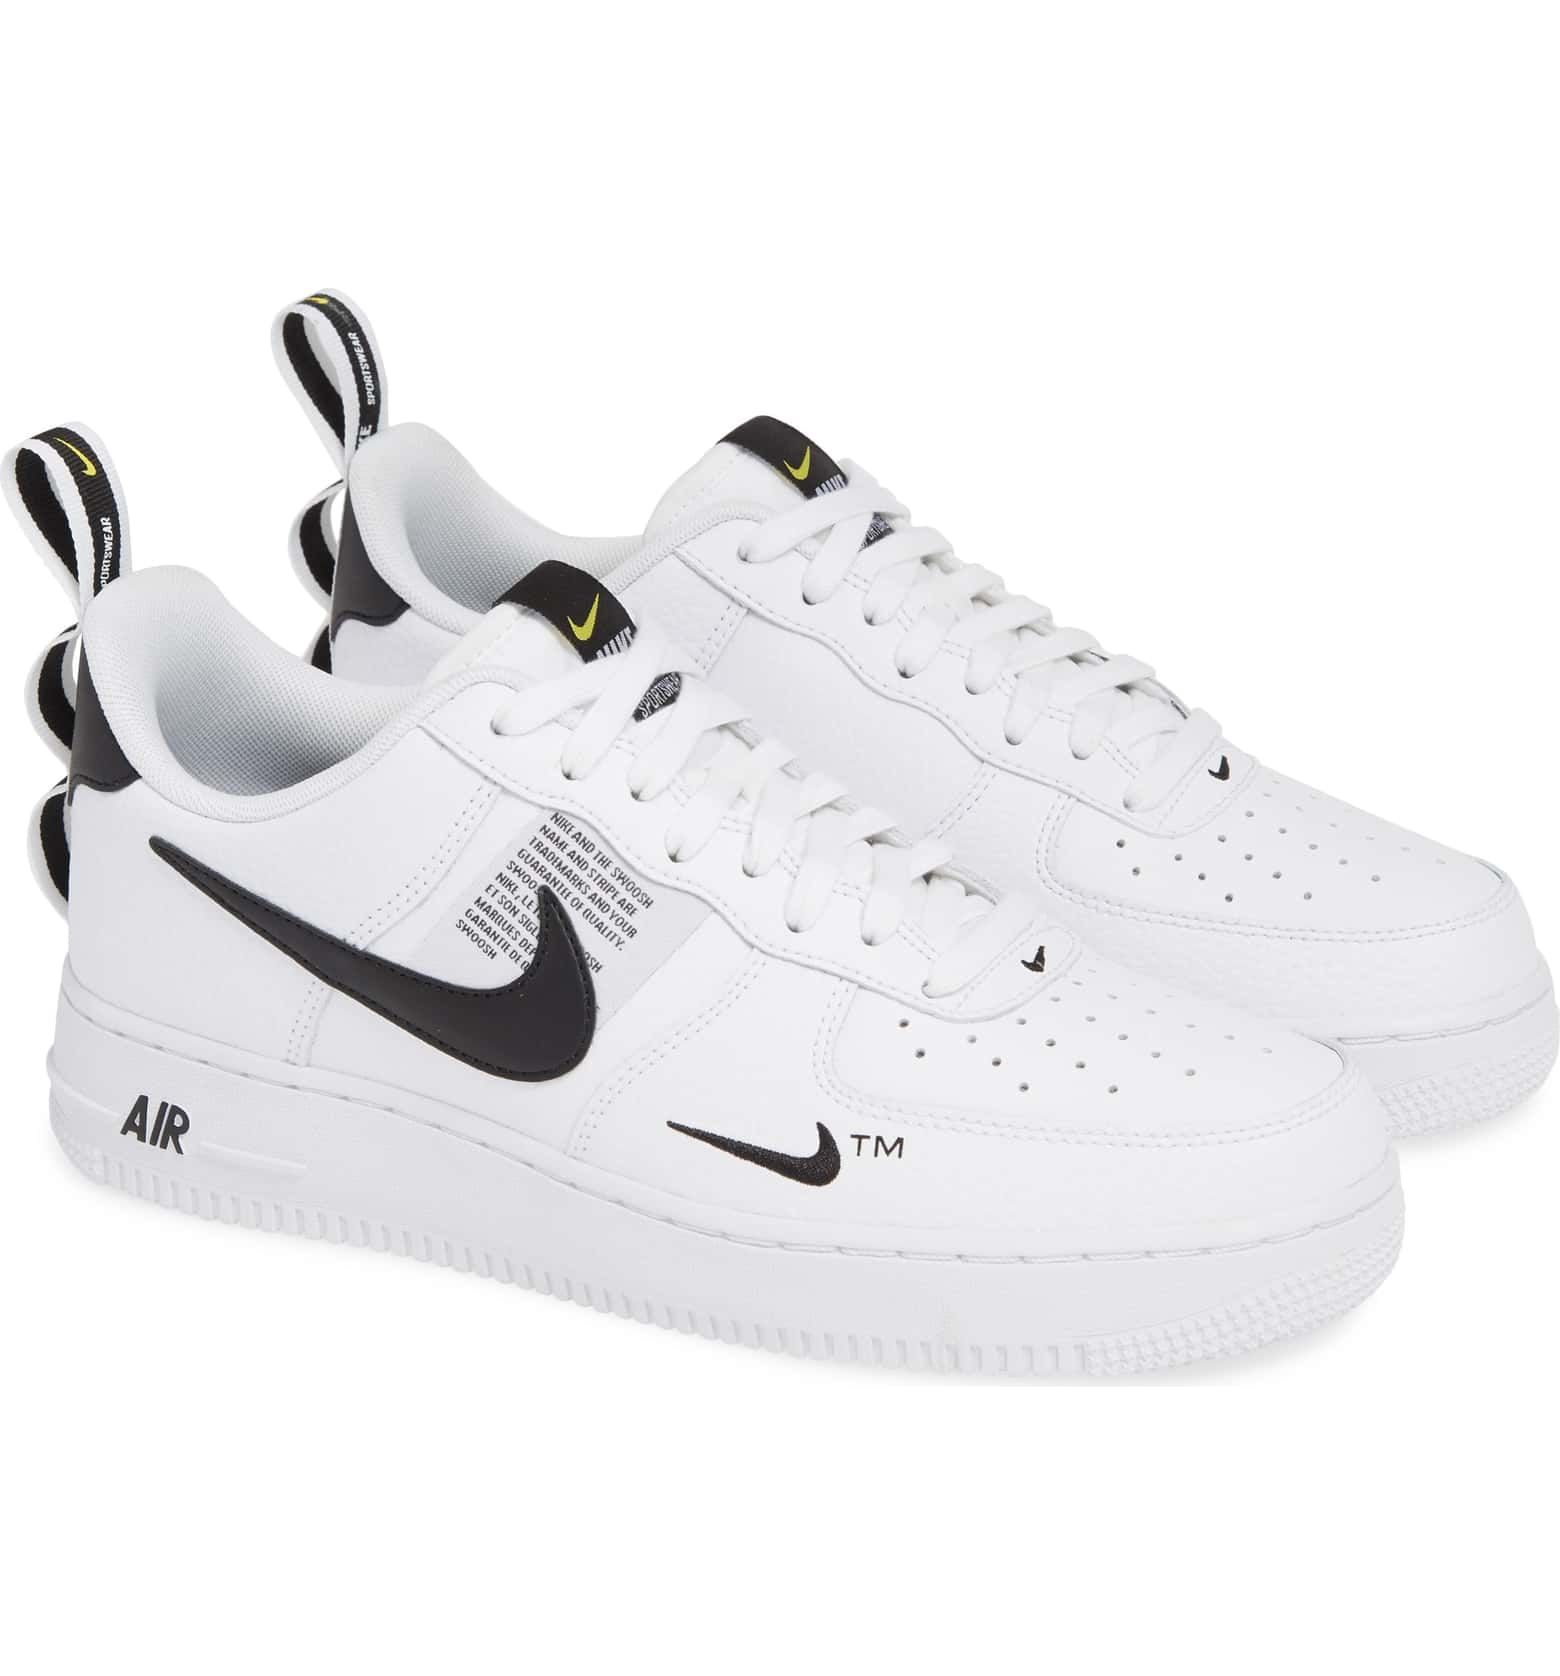 Air Force 1 07 Lv8 Utility Sneaker Alternate Color White W Nike Air Shoes White Nike Shoes Womens Sneakers